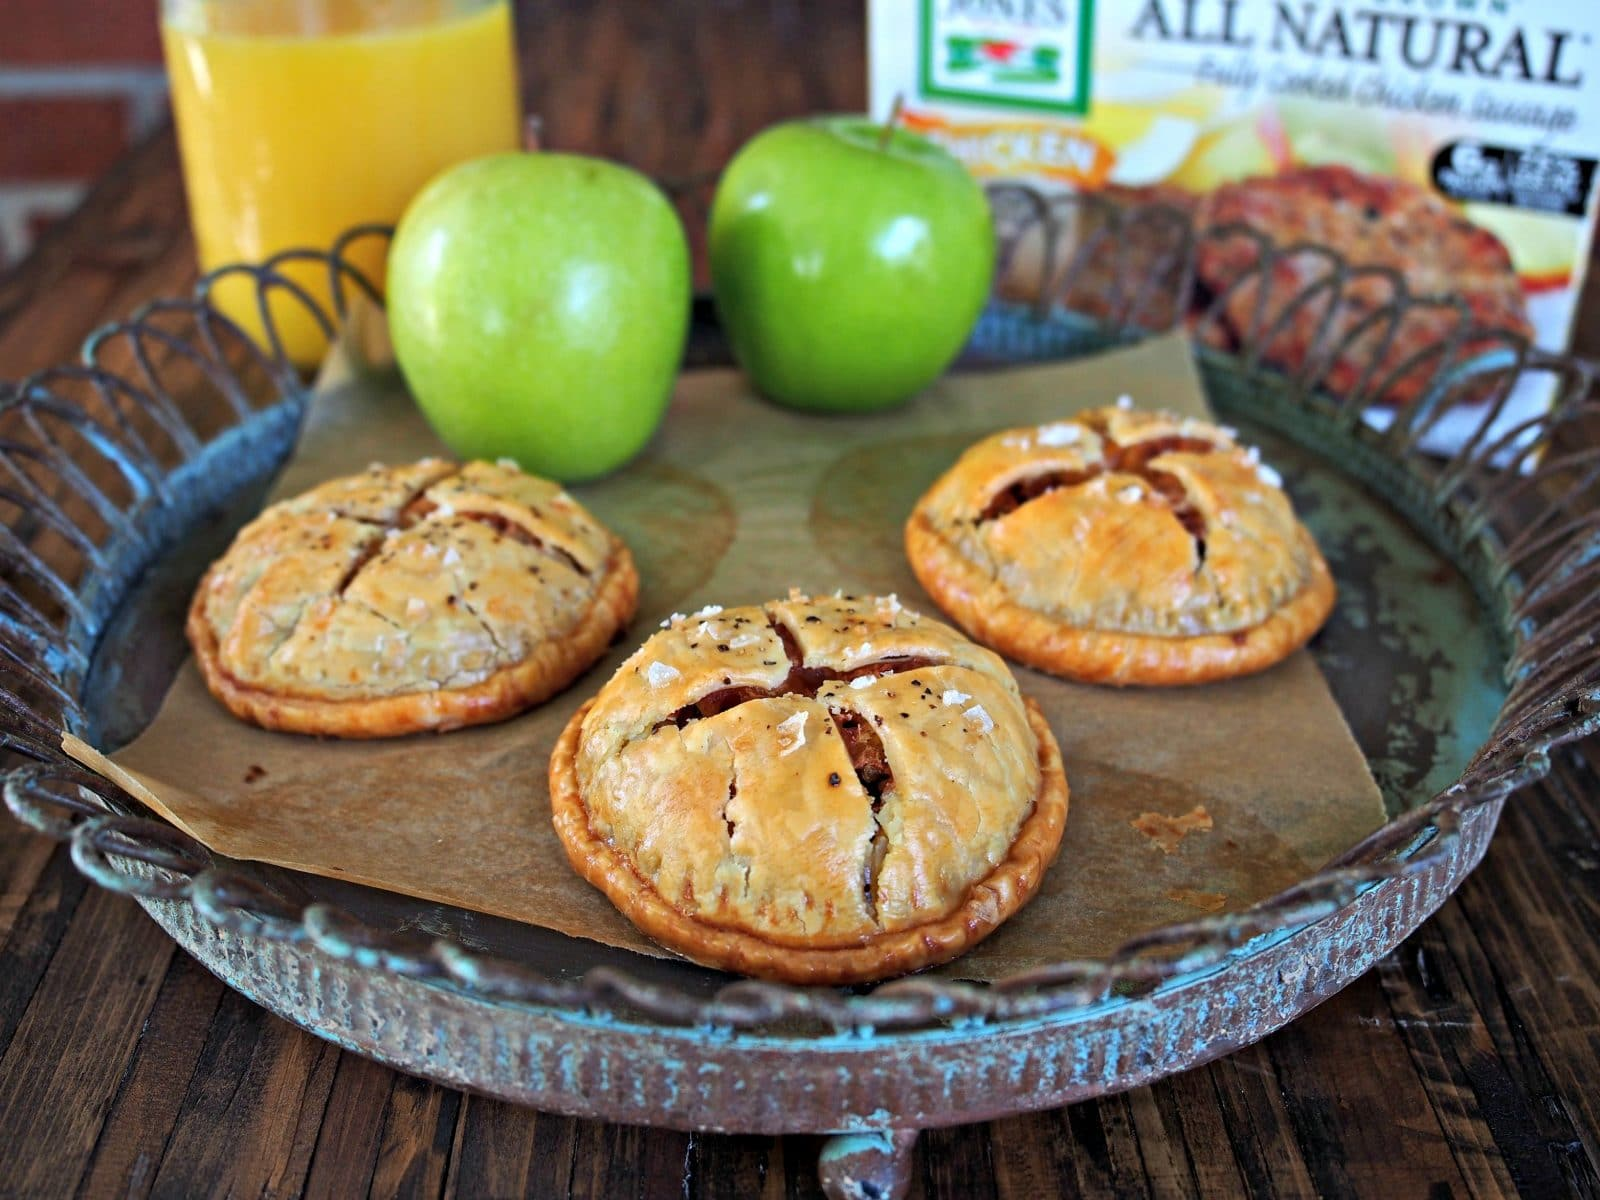 Chicken Sausage Hand Pies. Simply delicious. Jones Dairy Chicken Sausage Patties, apples & onions in mini pie form. A terrific breakfast for any morning. Simply Sated